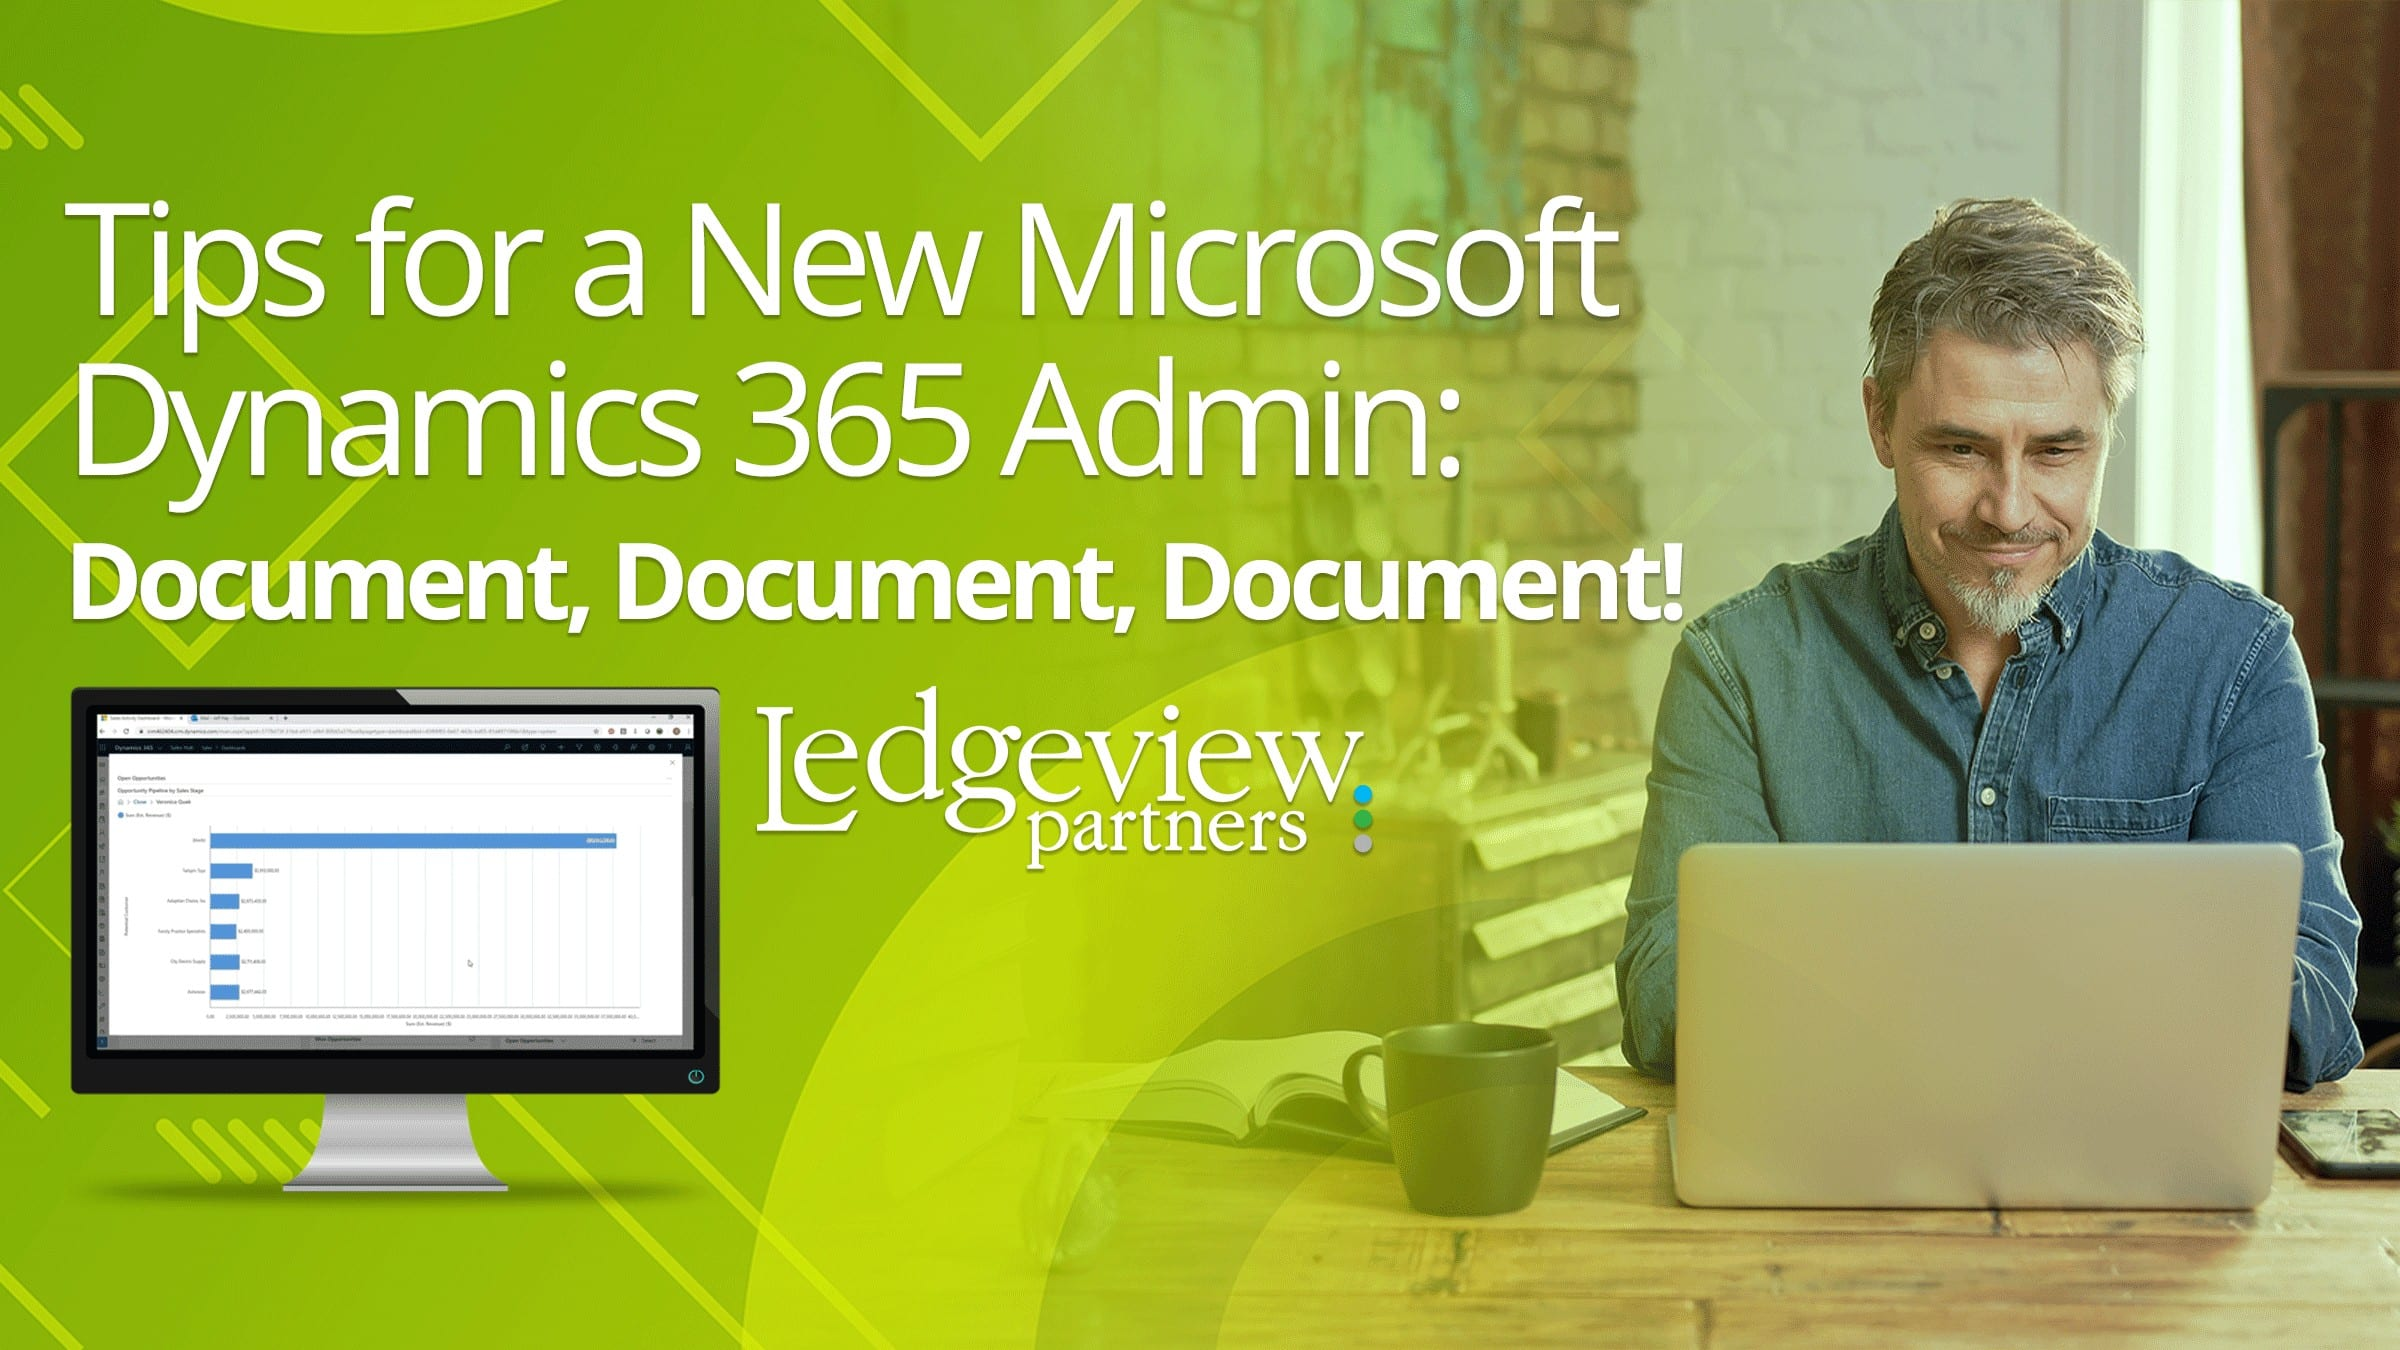 Tips for a New Microsoft Dynamics 365 Admin